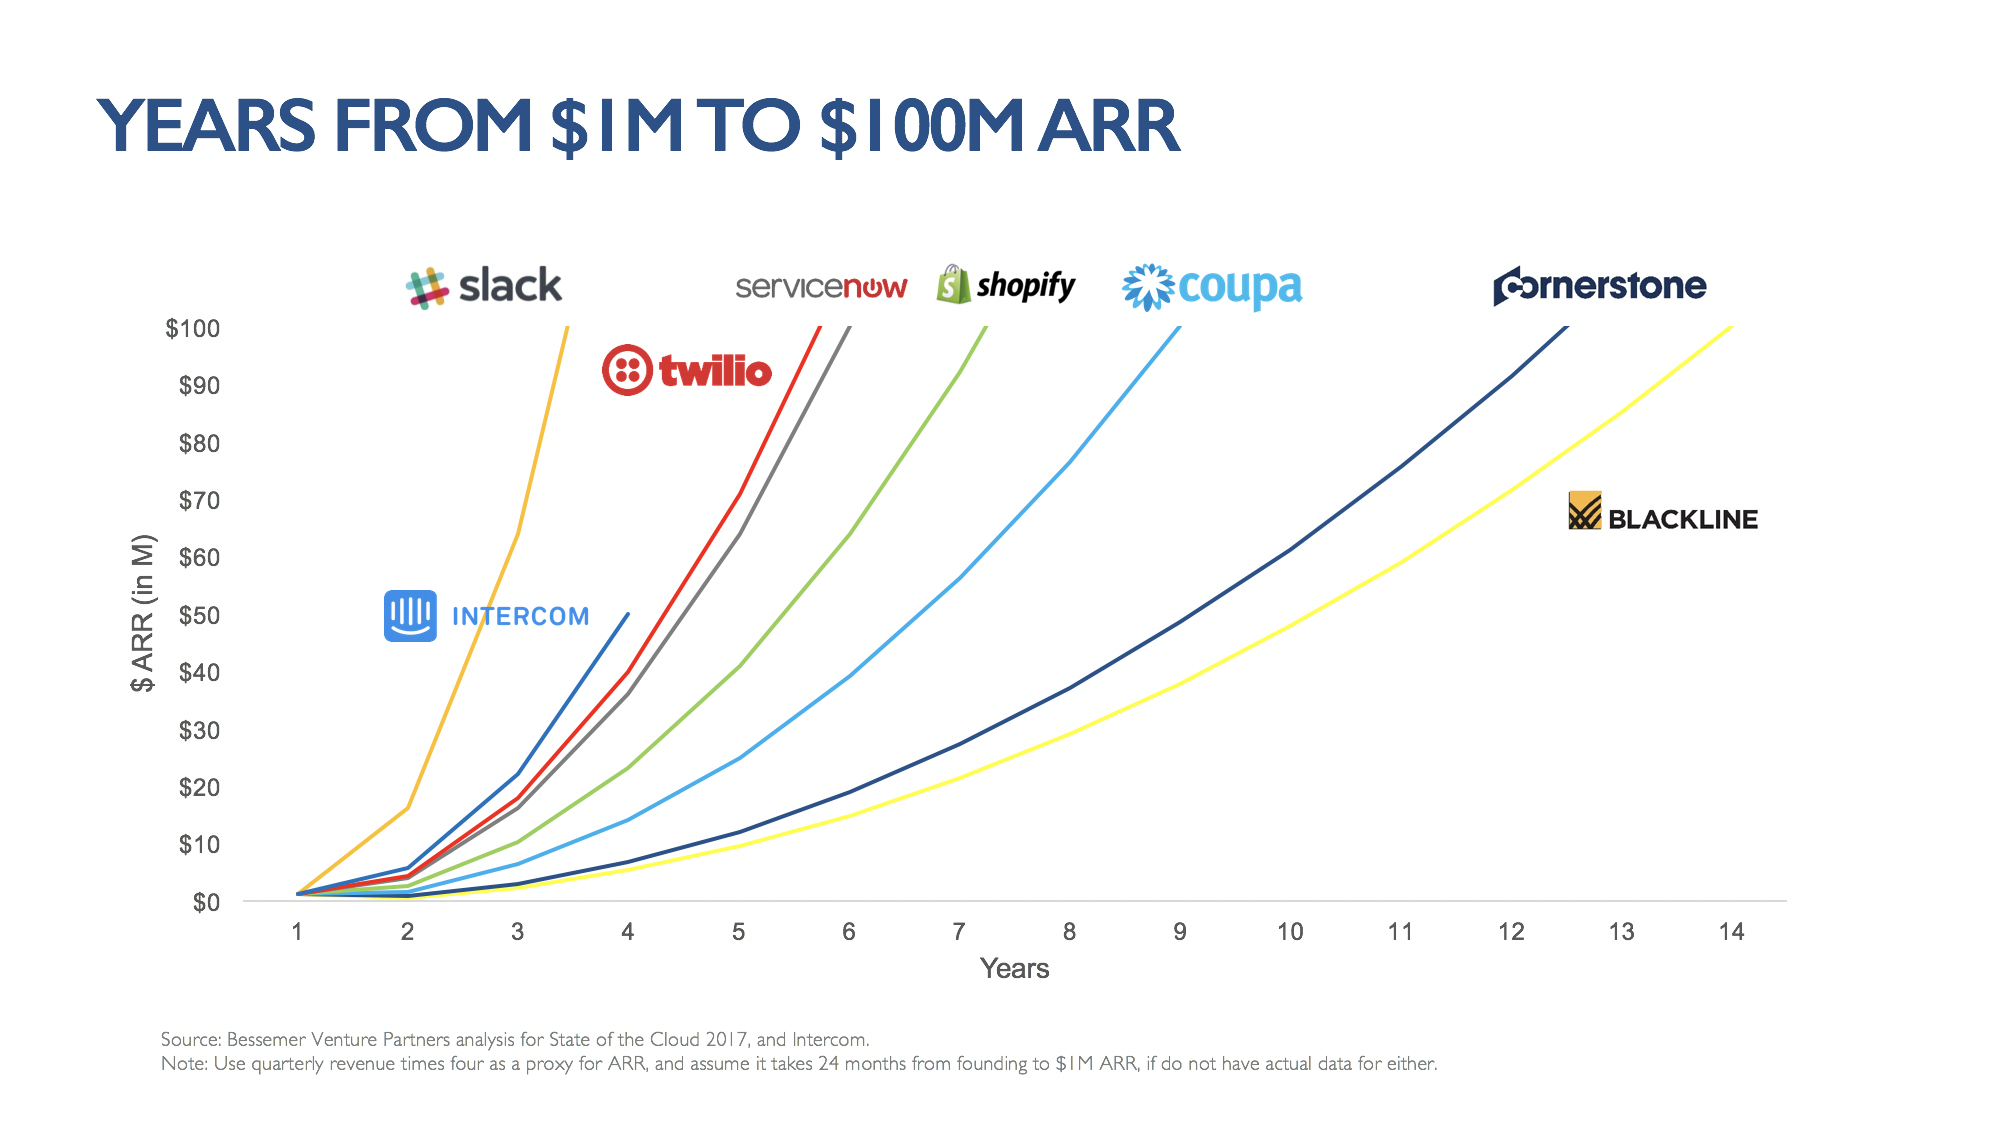 Intercom's ARR growth